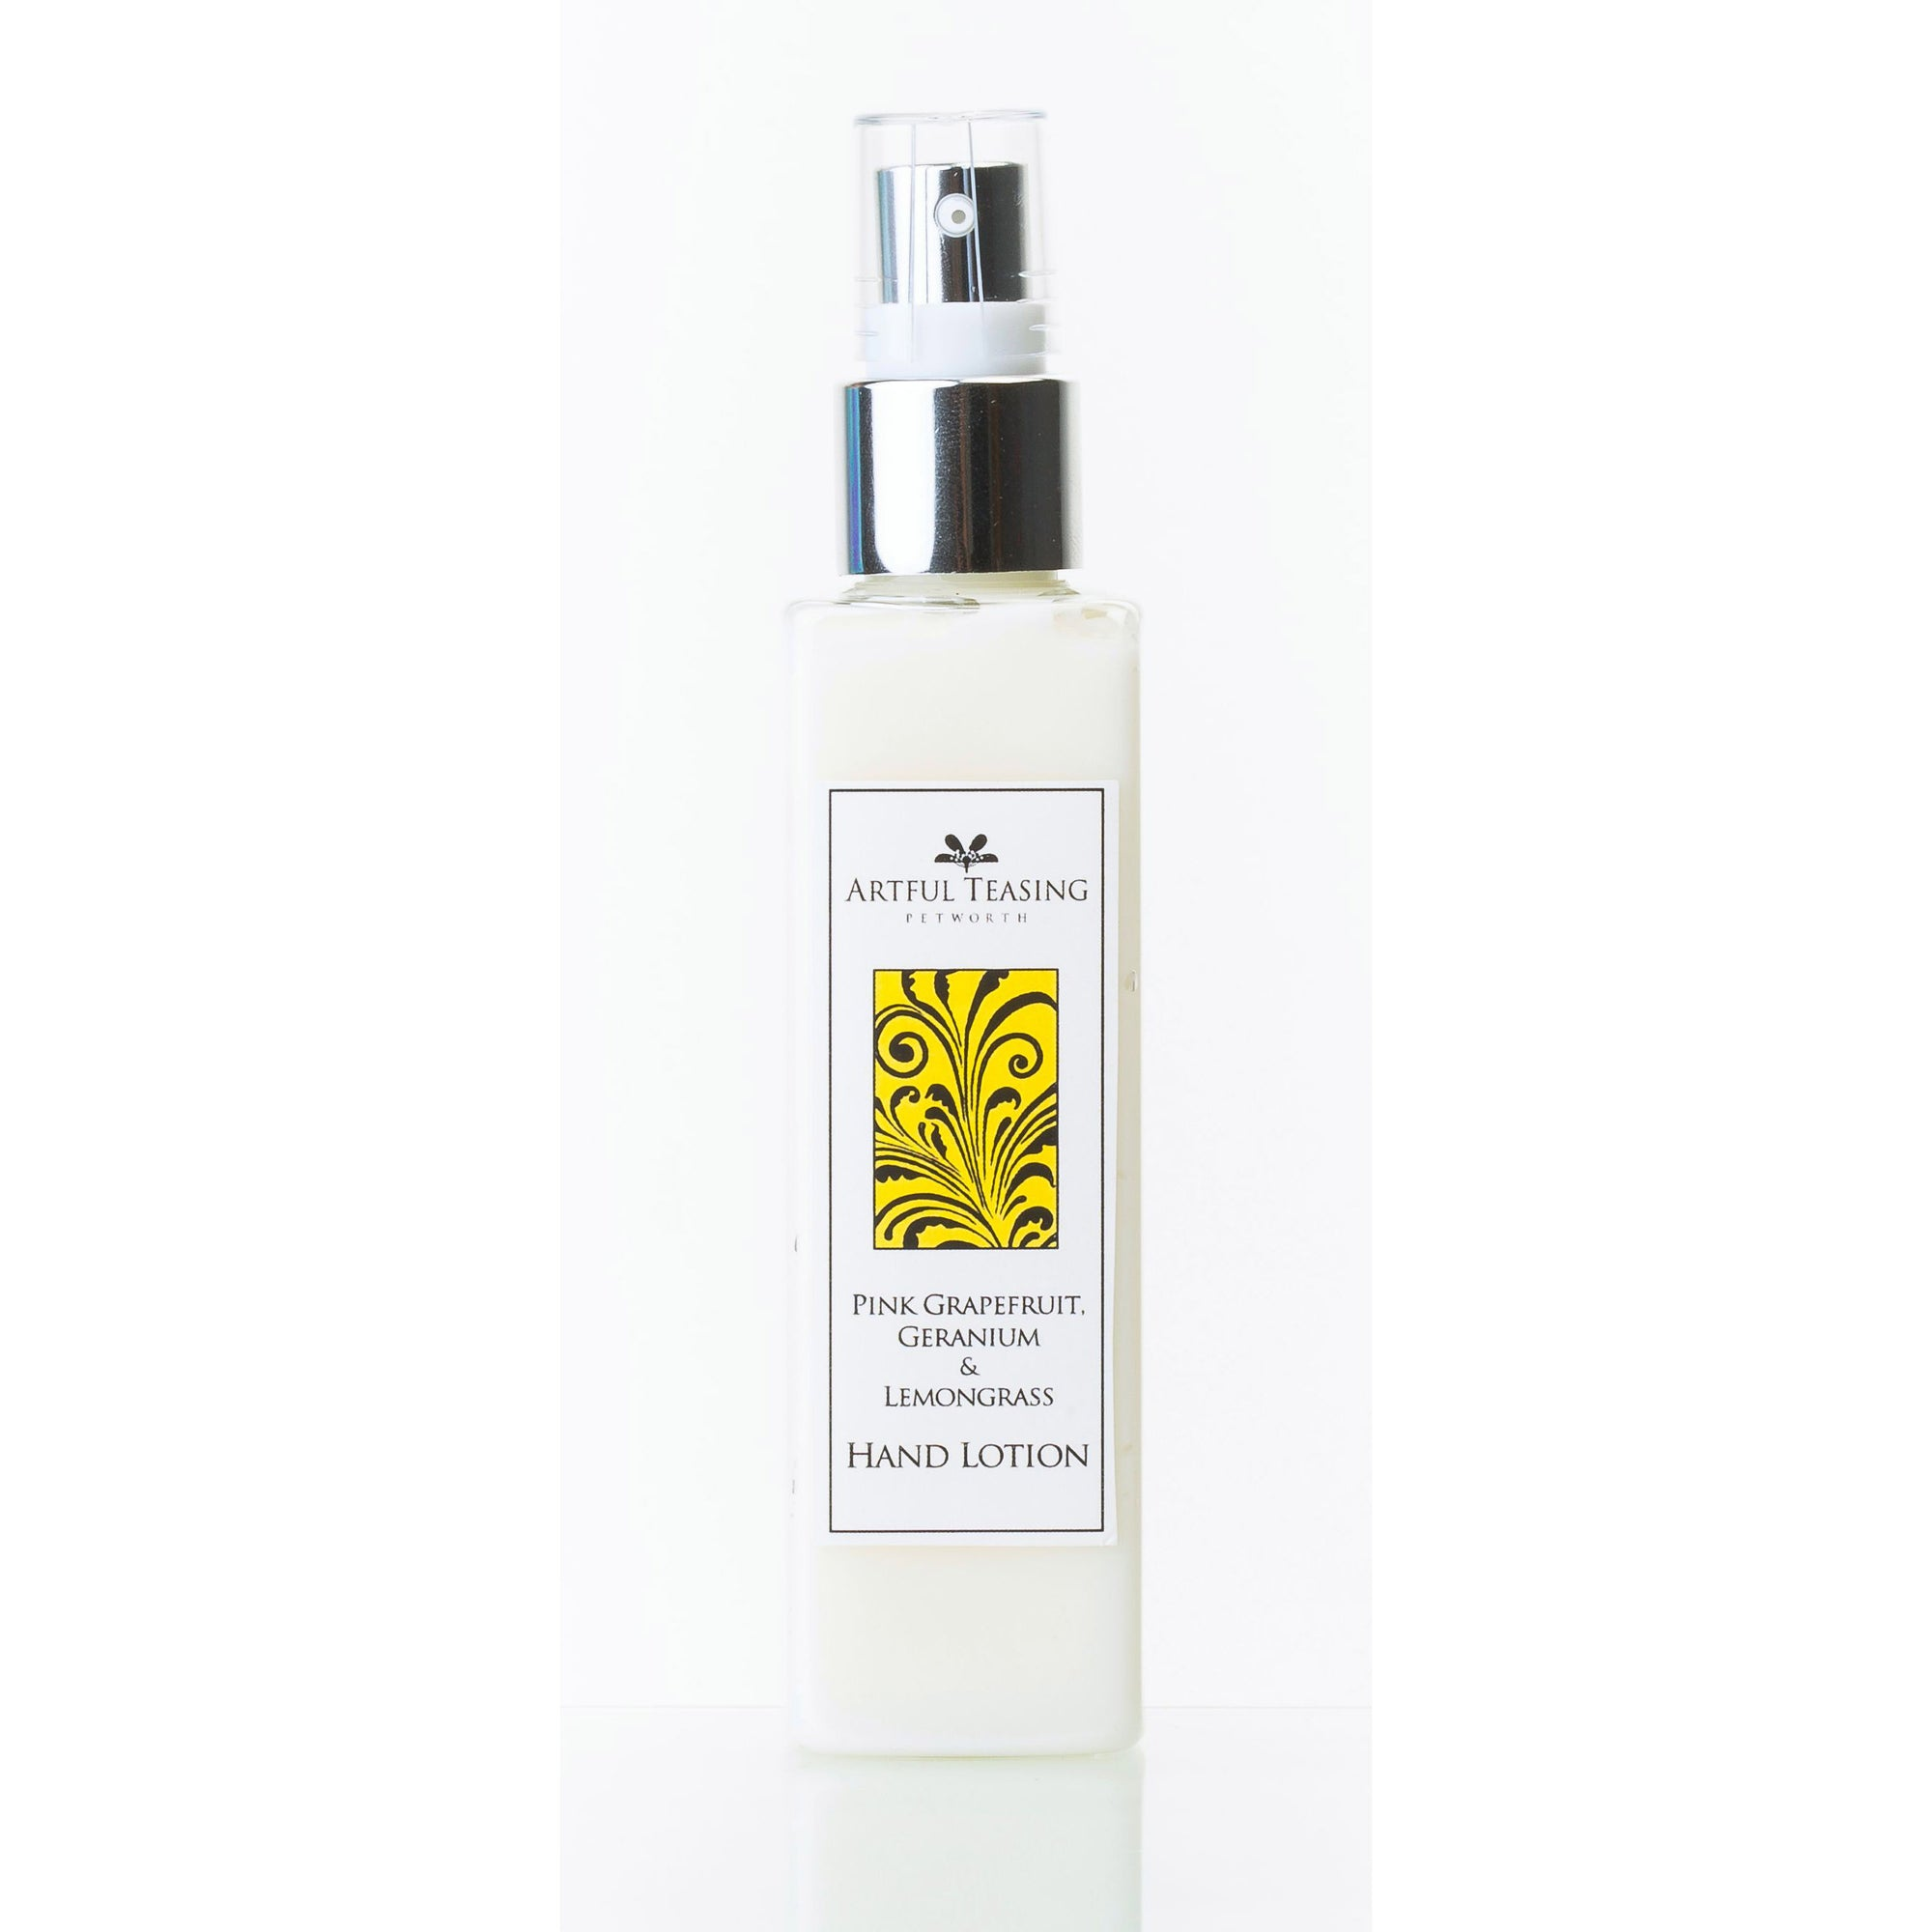 Pink Grapefruit, Geranium & Lemongrass Hand Lotion 100ml